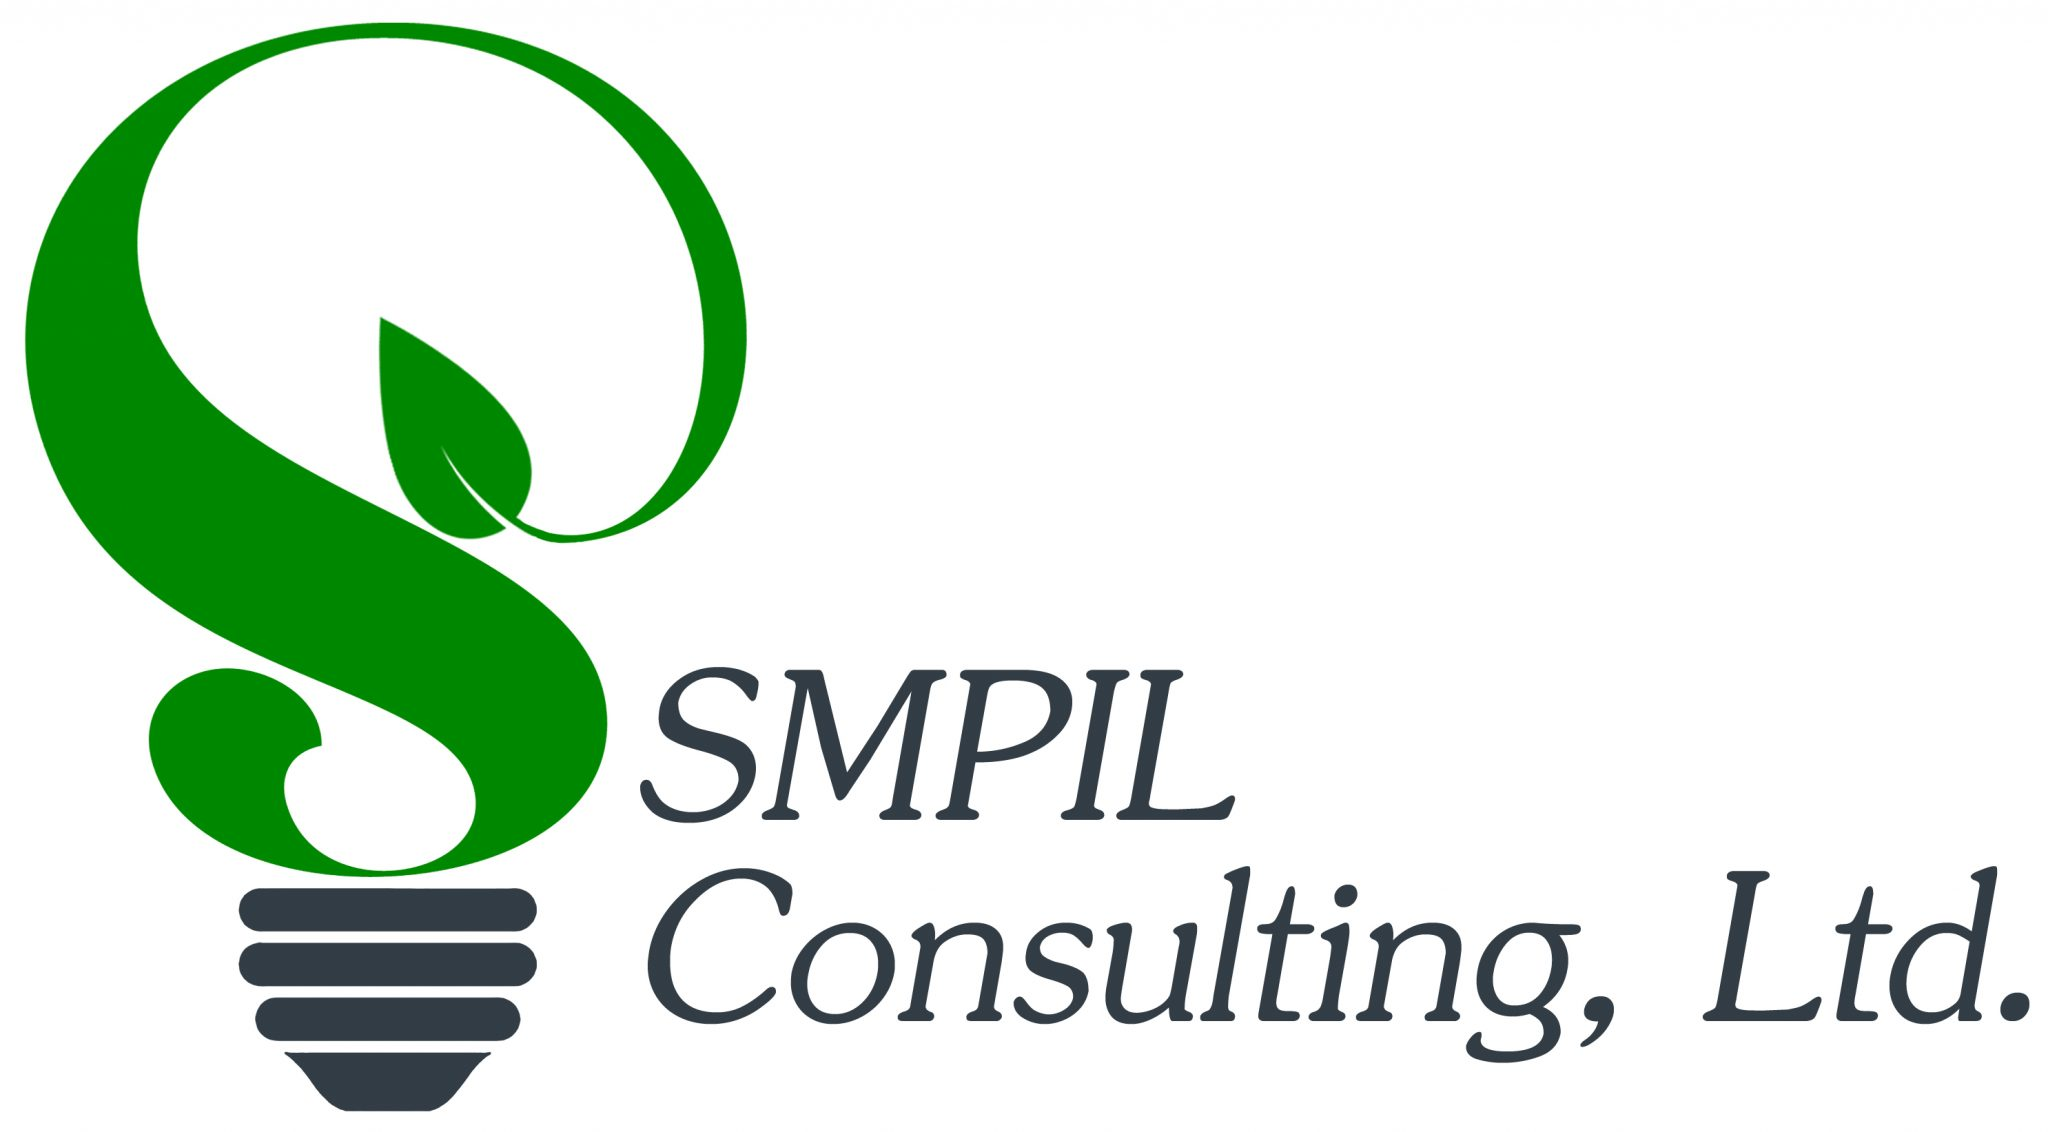 SMPIL Consulting